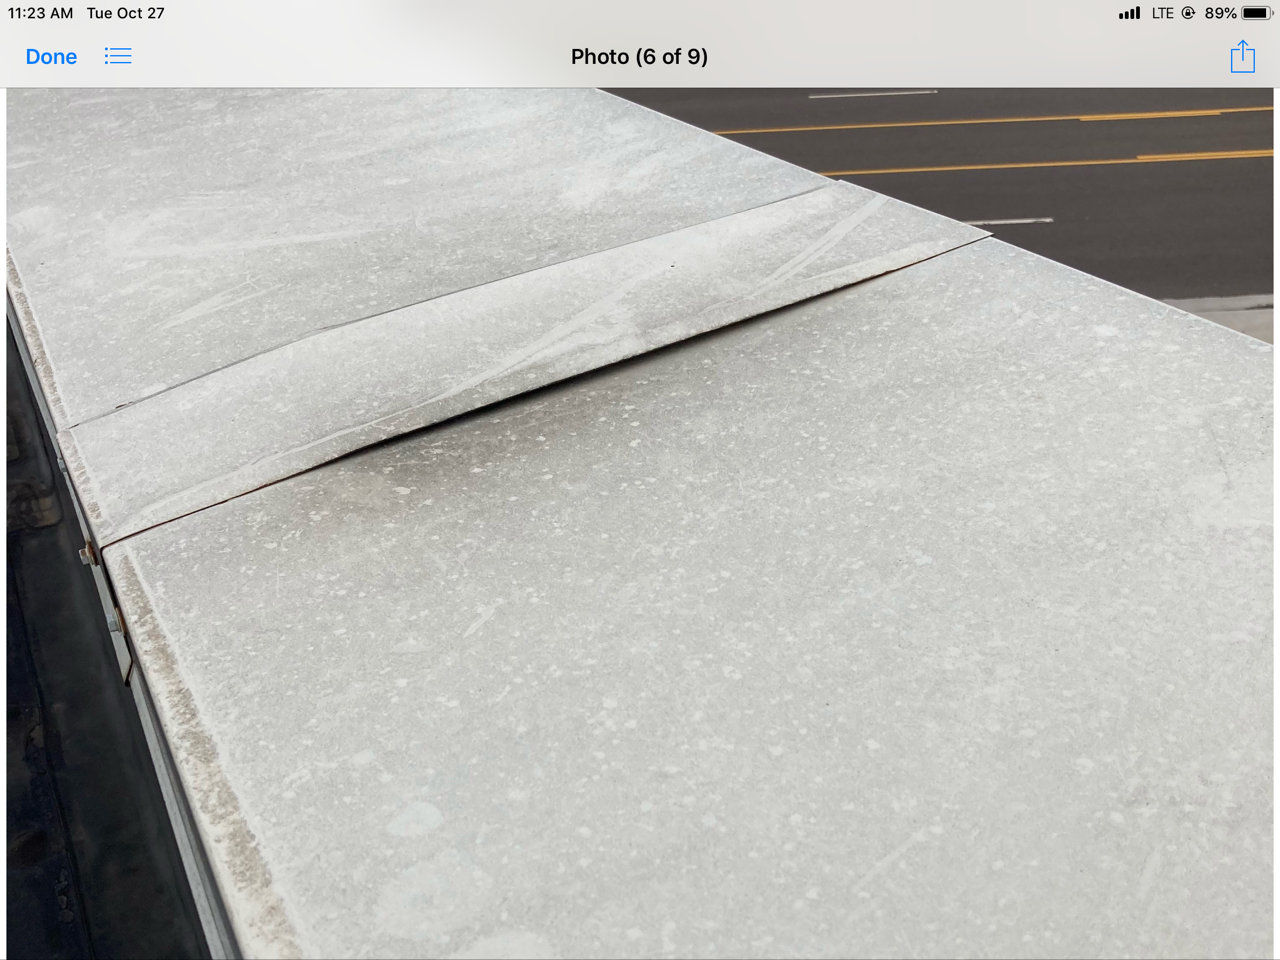 This is a view of a metal curb on a commercial roof.